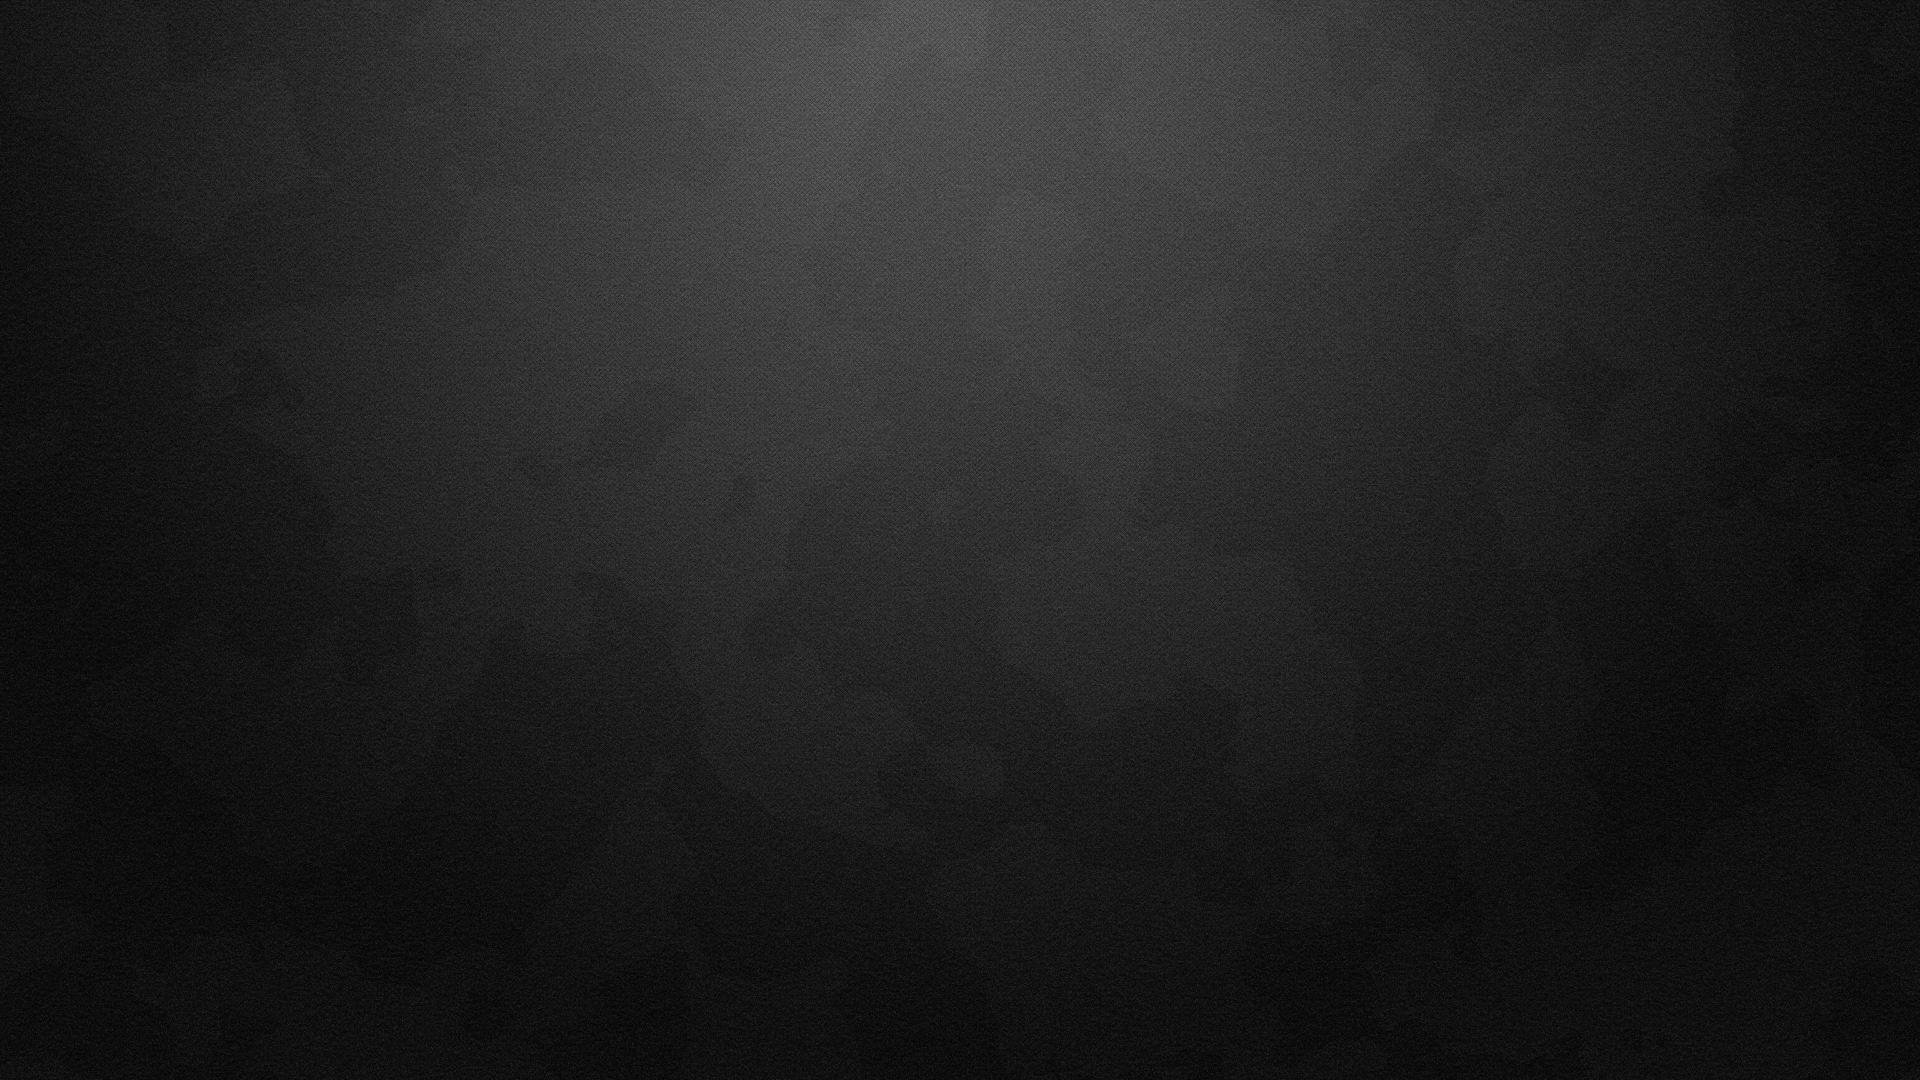 Surface Pro Wallpaper 1920x1080 Wallpapersafari